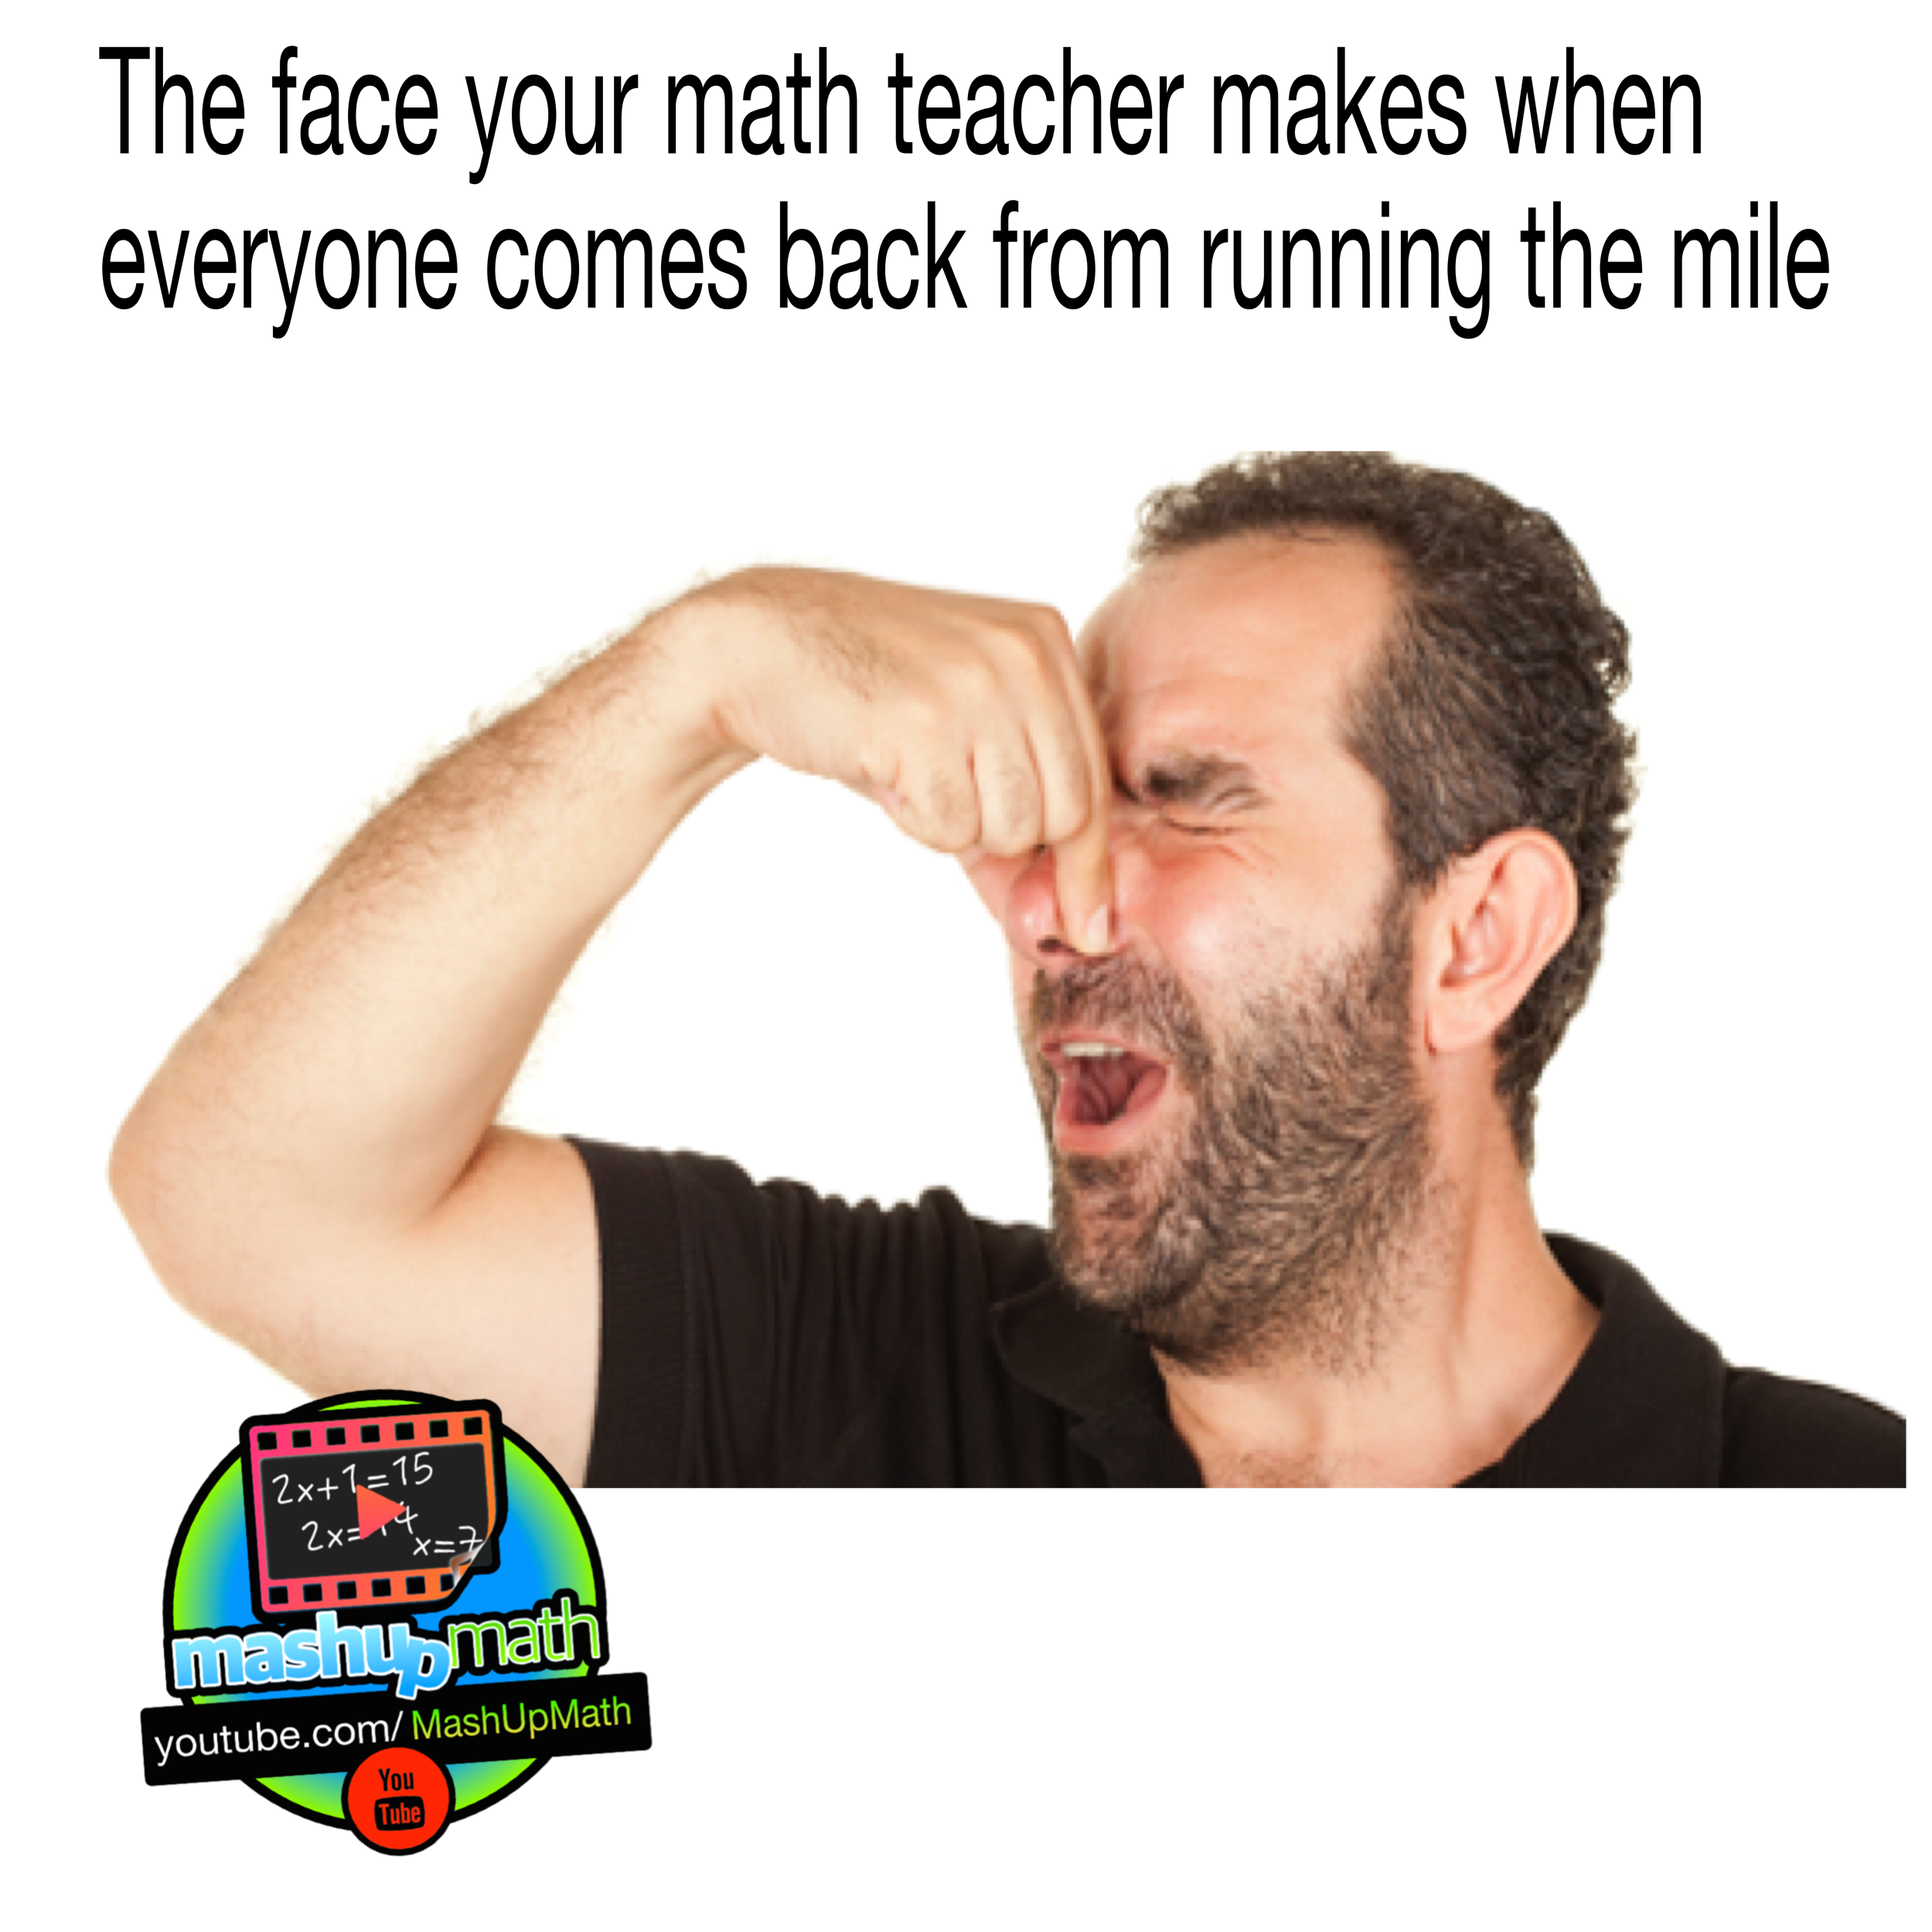 Any math teachers out there looking for some humor enjoy our latest math meme wegetit